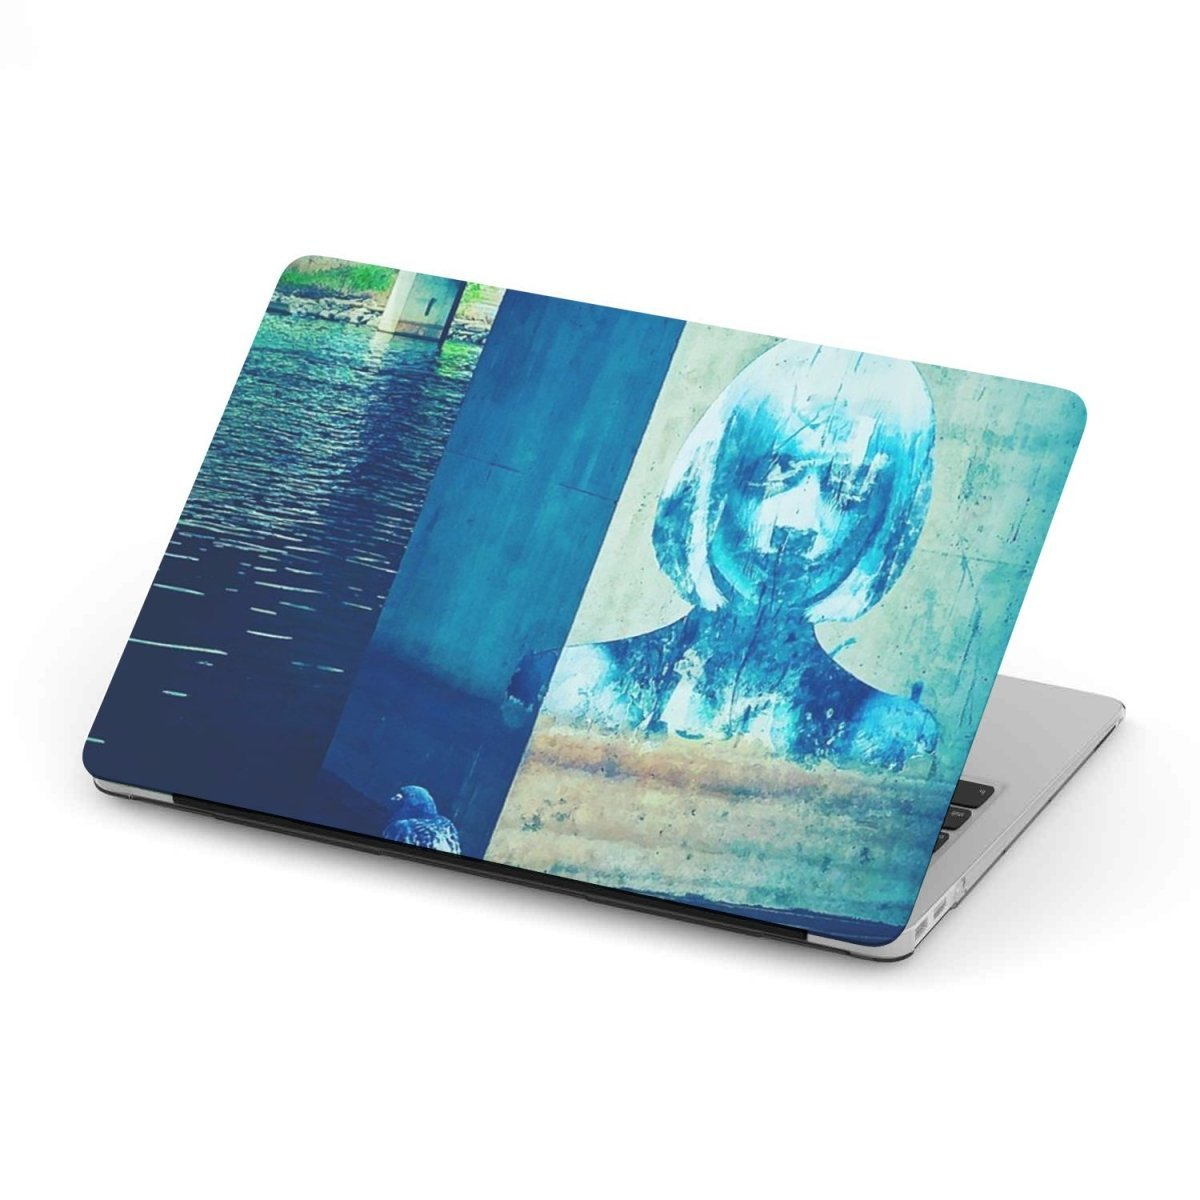 MacBook Pro Hard Case - What's Your Style?